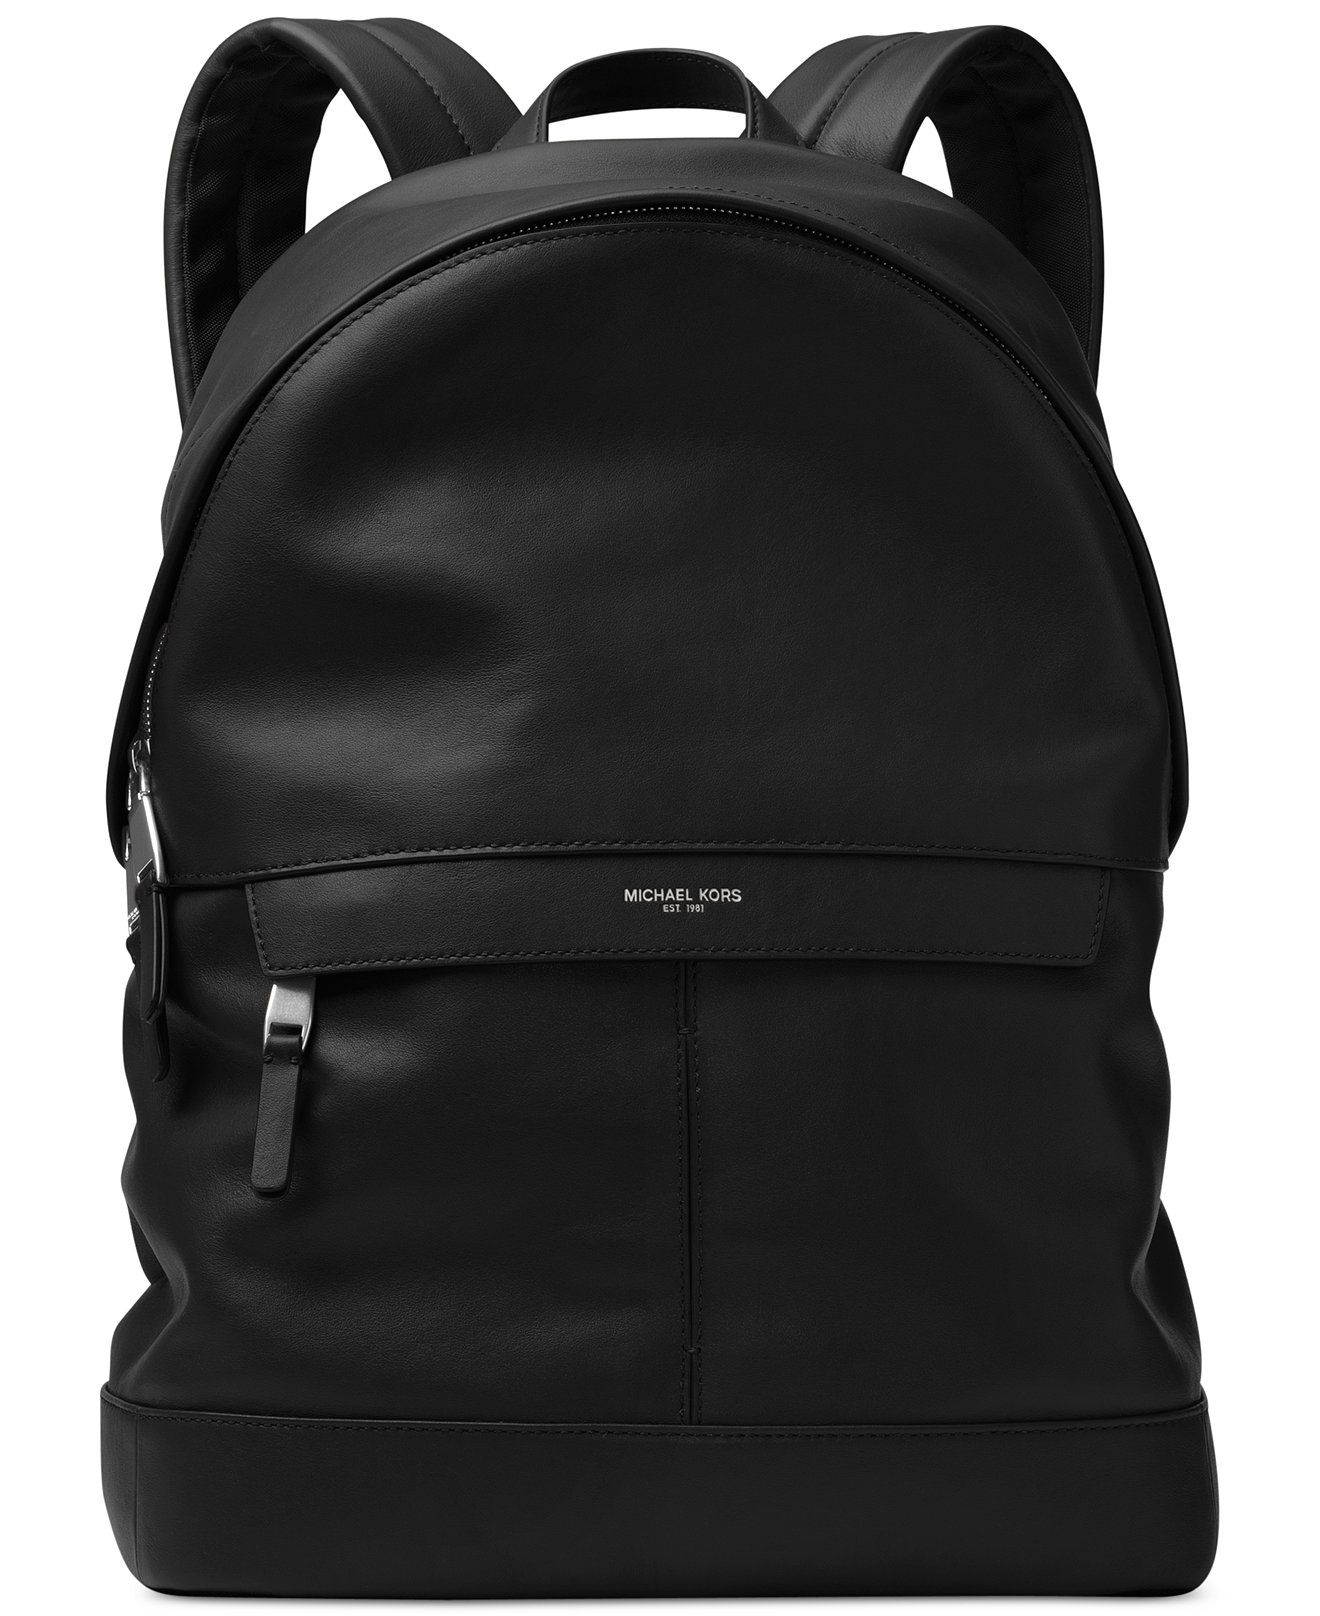 925dd405ffd8 Michael Kors Men's Odin Resina Backpack - Bags & Backpacks - Men - Macy's